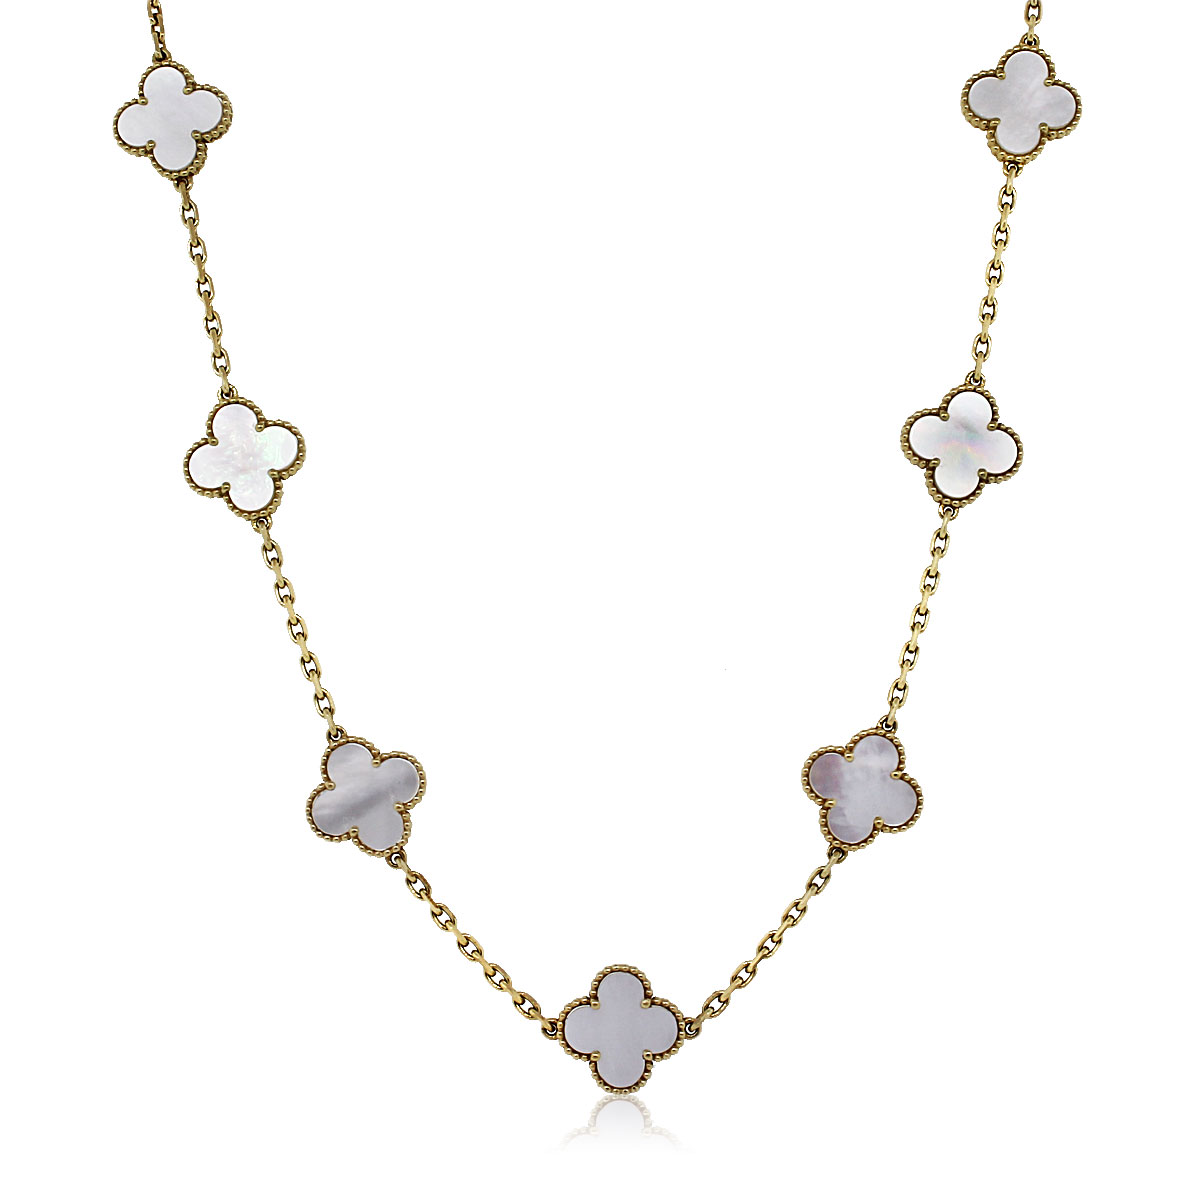 How much is a van cleef and arpels alhambra bracelet